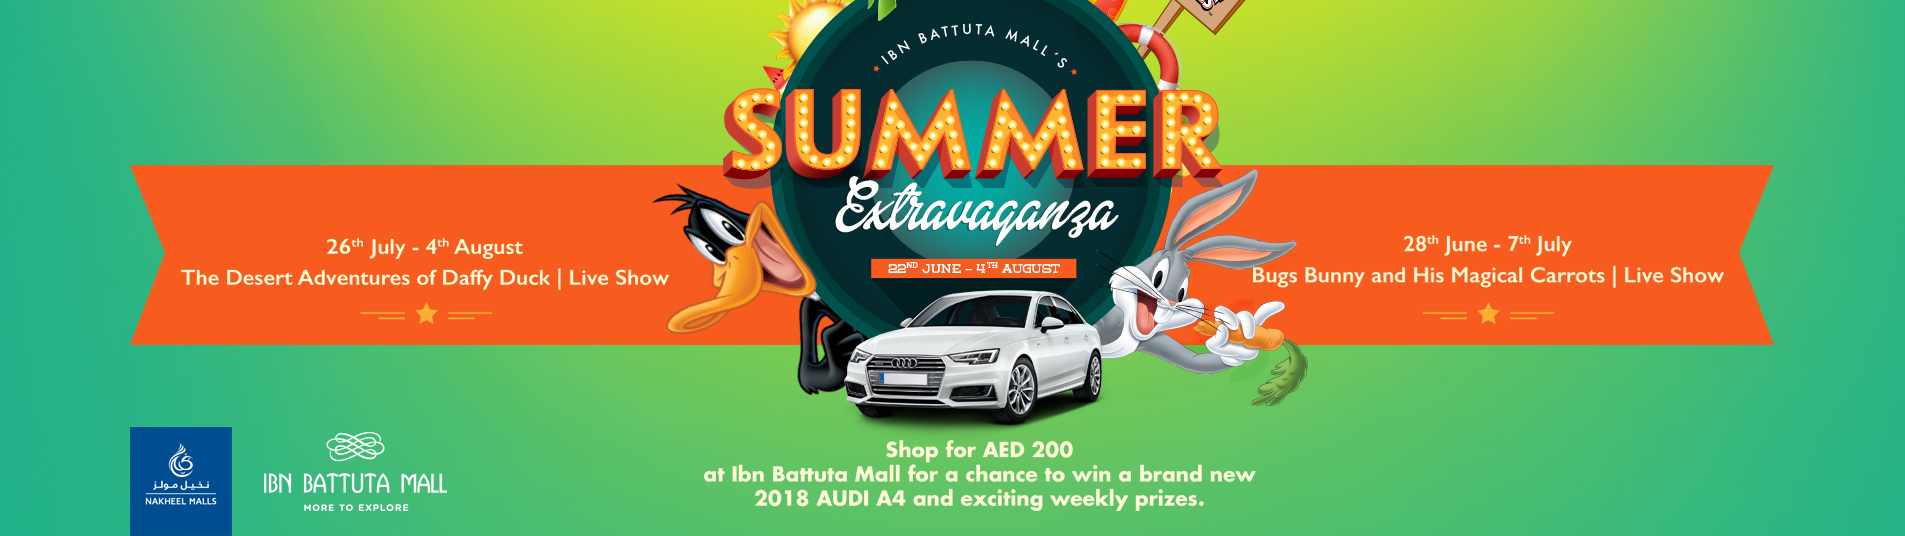 DSS Festival Extravaganza at Ibn Battuta Mall - Dubaisavers